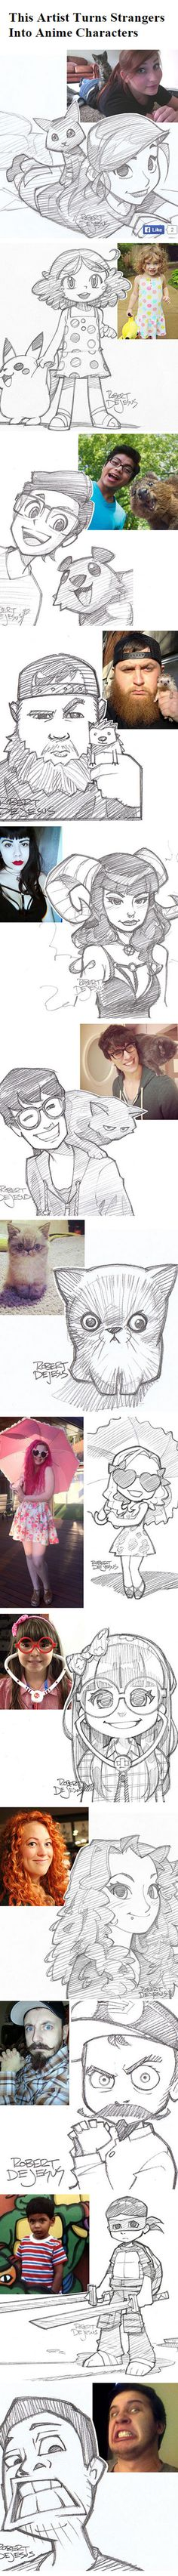 This Artist Turns Strangers Into Anime Characters http://www.boredpanda.com/anime-sketches-from-photos-robert-dejesus/